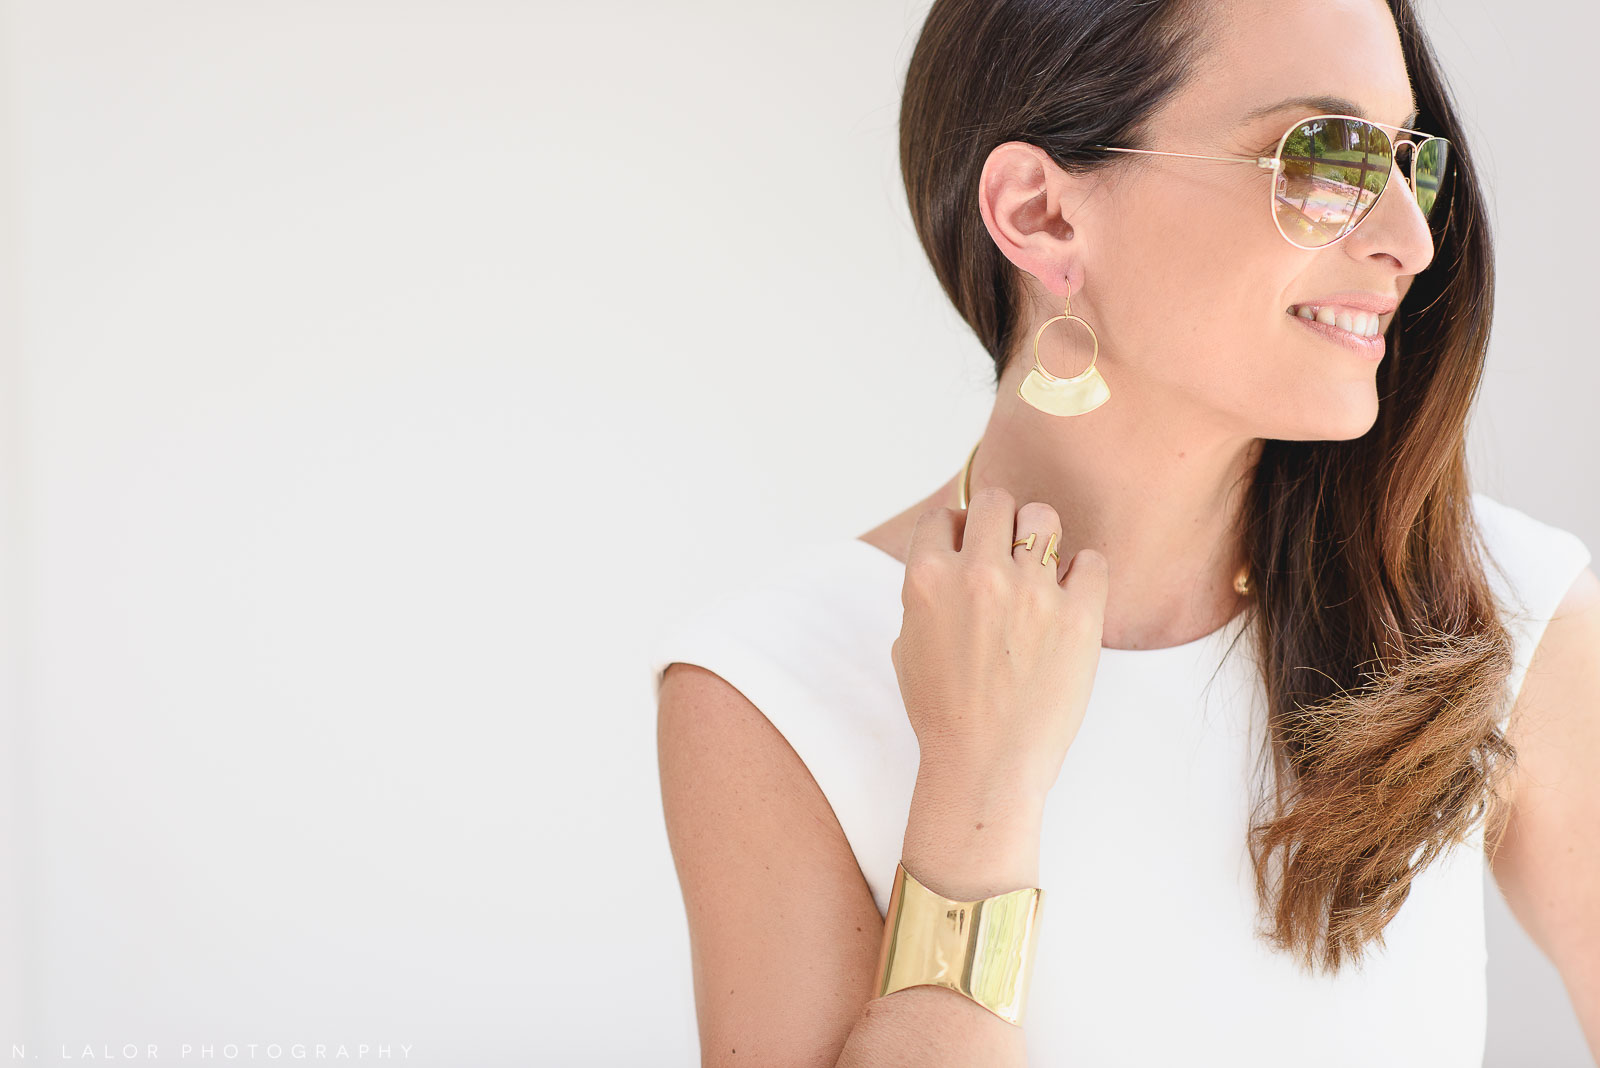 Model wearing gold artisanal jewelry. Local Small Business photoshoot for METTA10 by N. Lalor Photography. Westport, Connecticut.